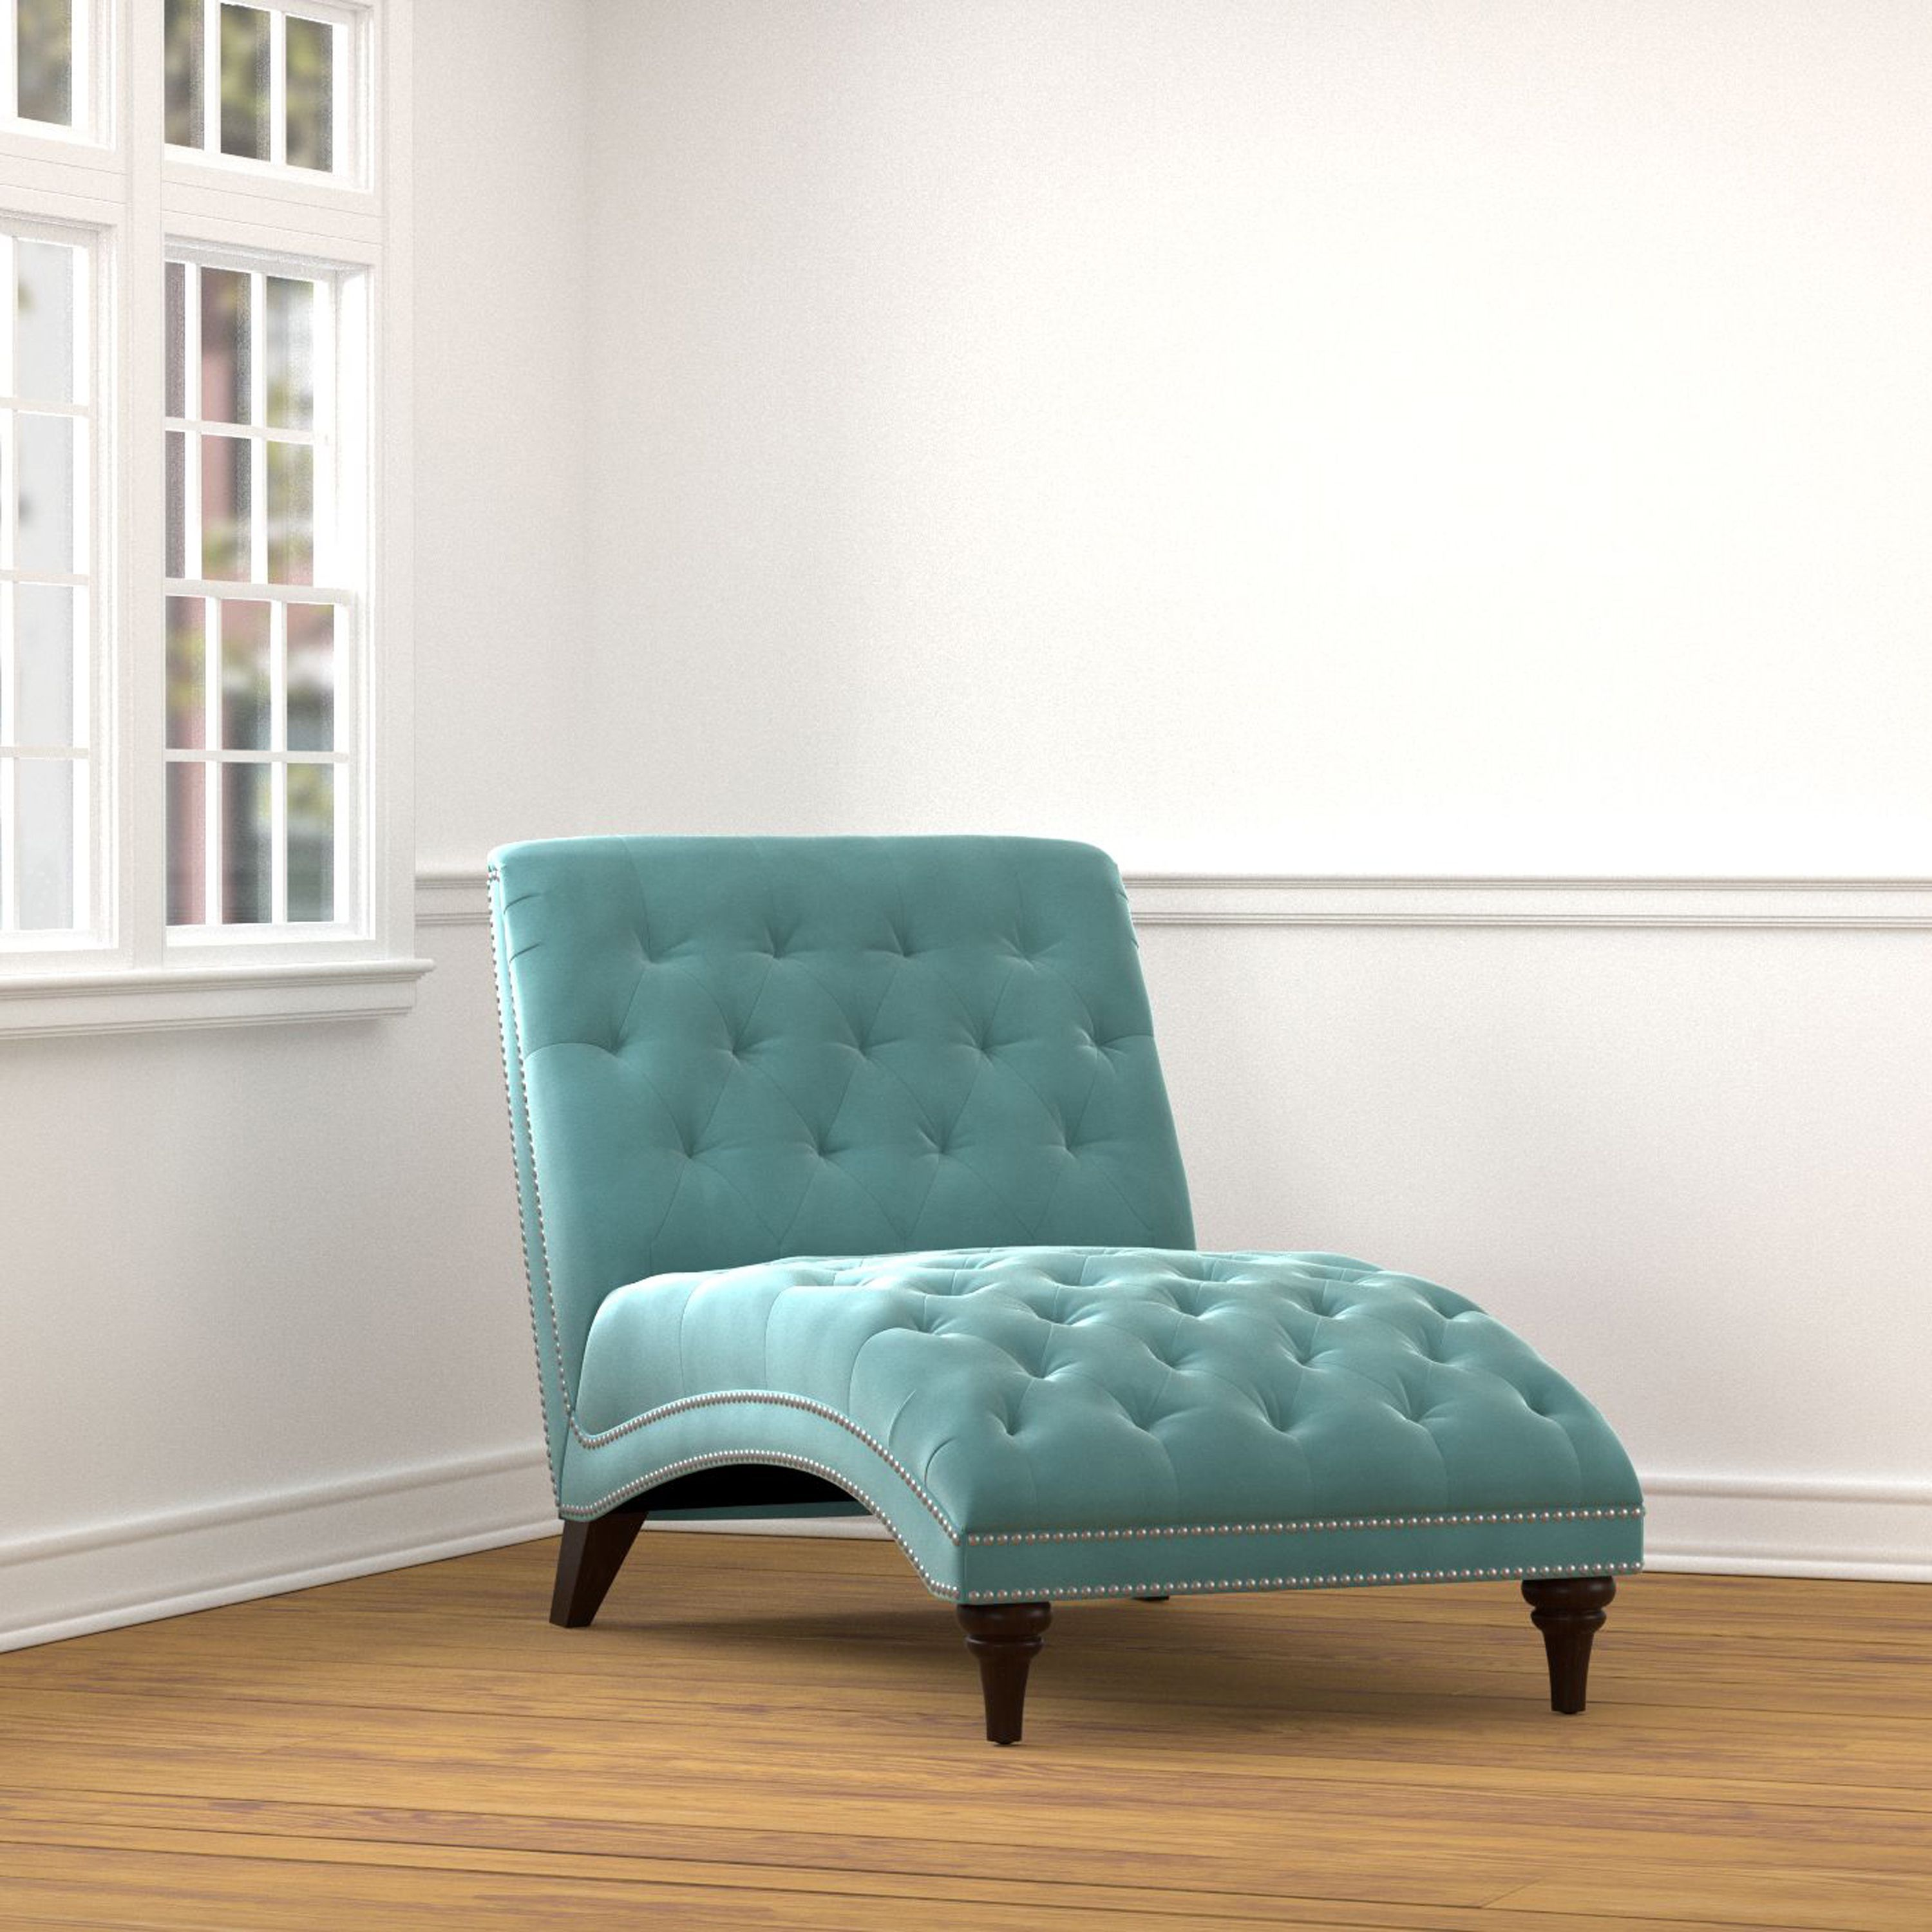 The Portfolio Palermo wide chaise is covered in a soft turquoise ...